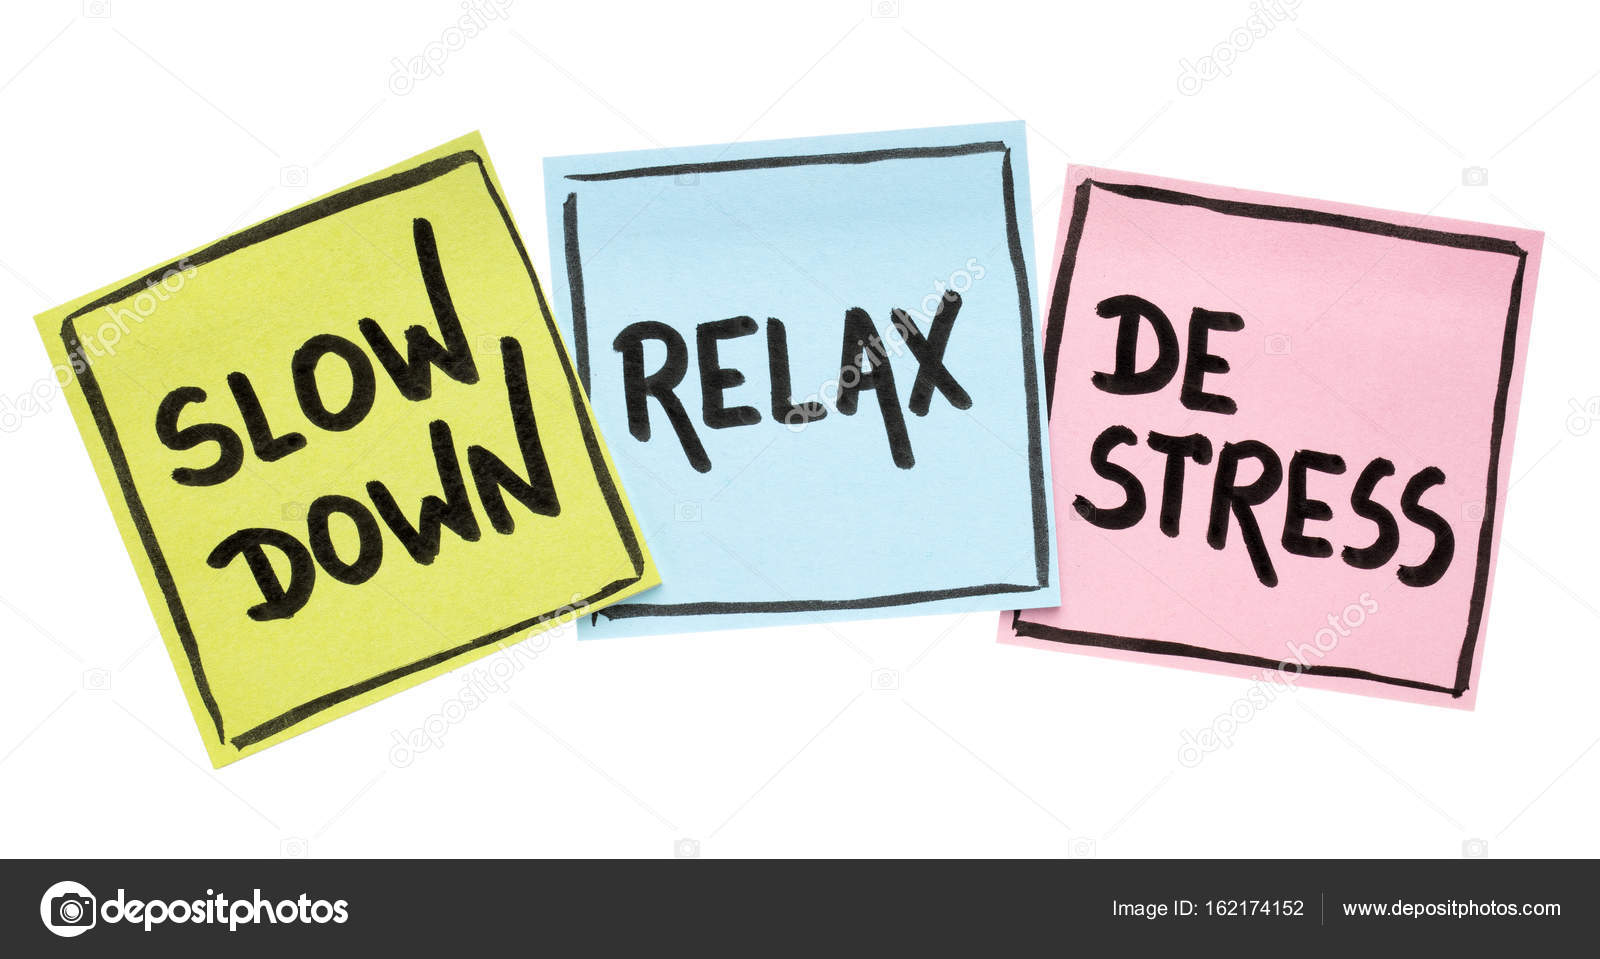 depositphotos_162174152-stock-photo-slow-down-relax-de-stress.jpg